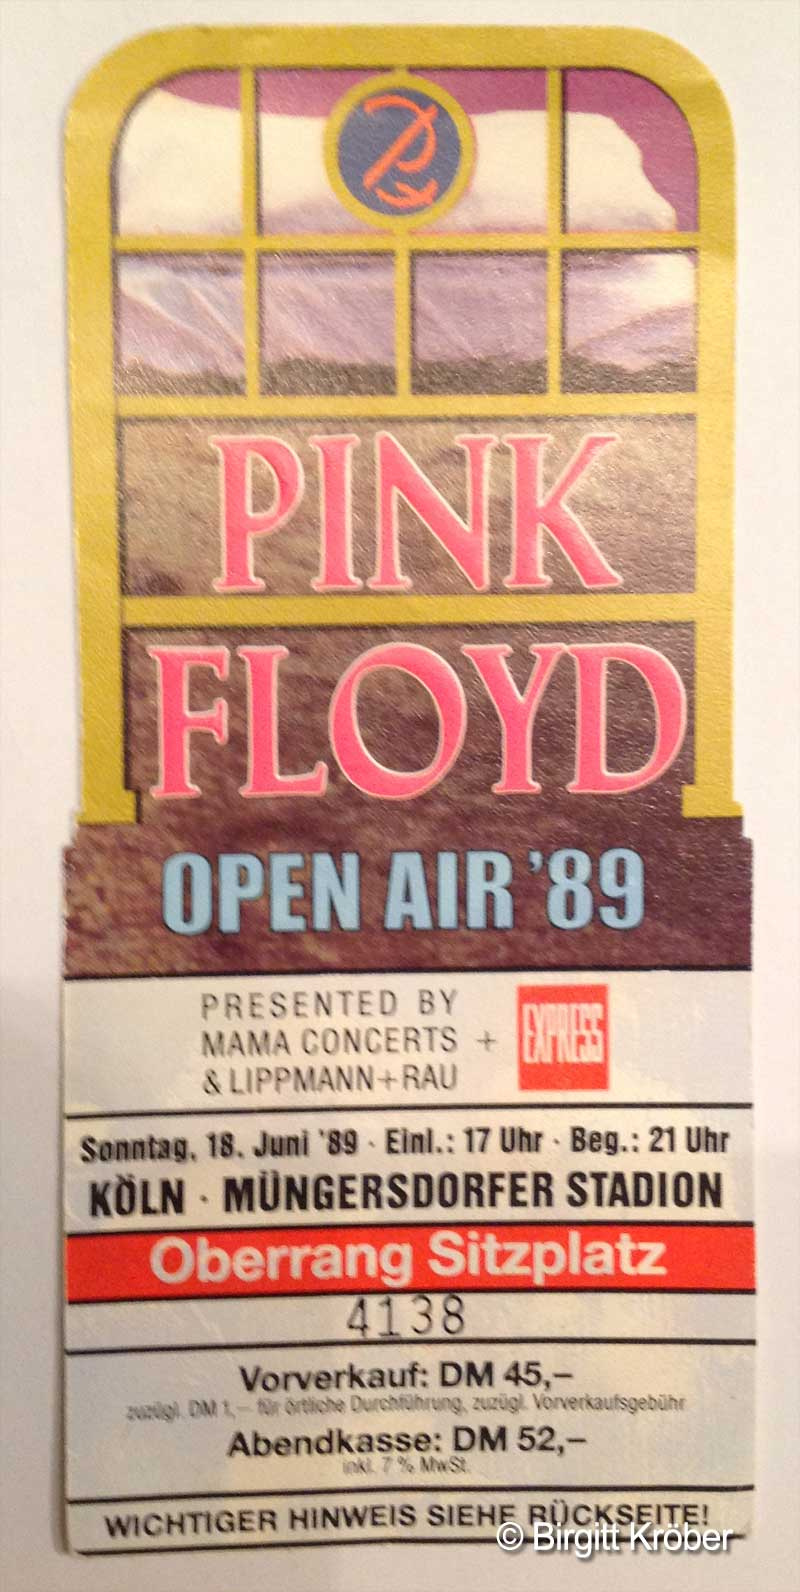 1989 Pink Floyd Köln Ticket